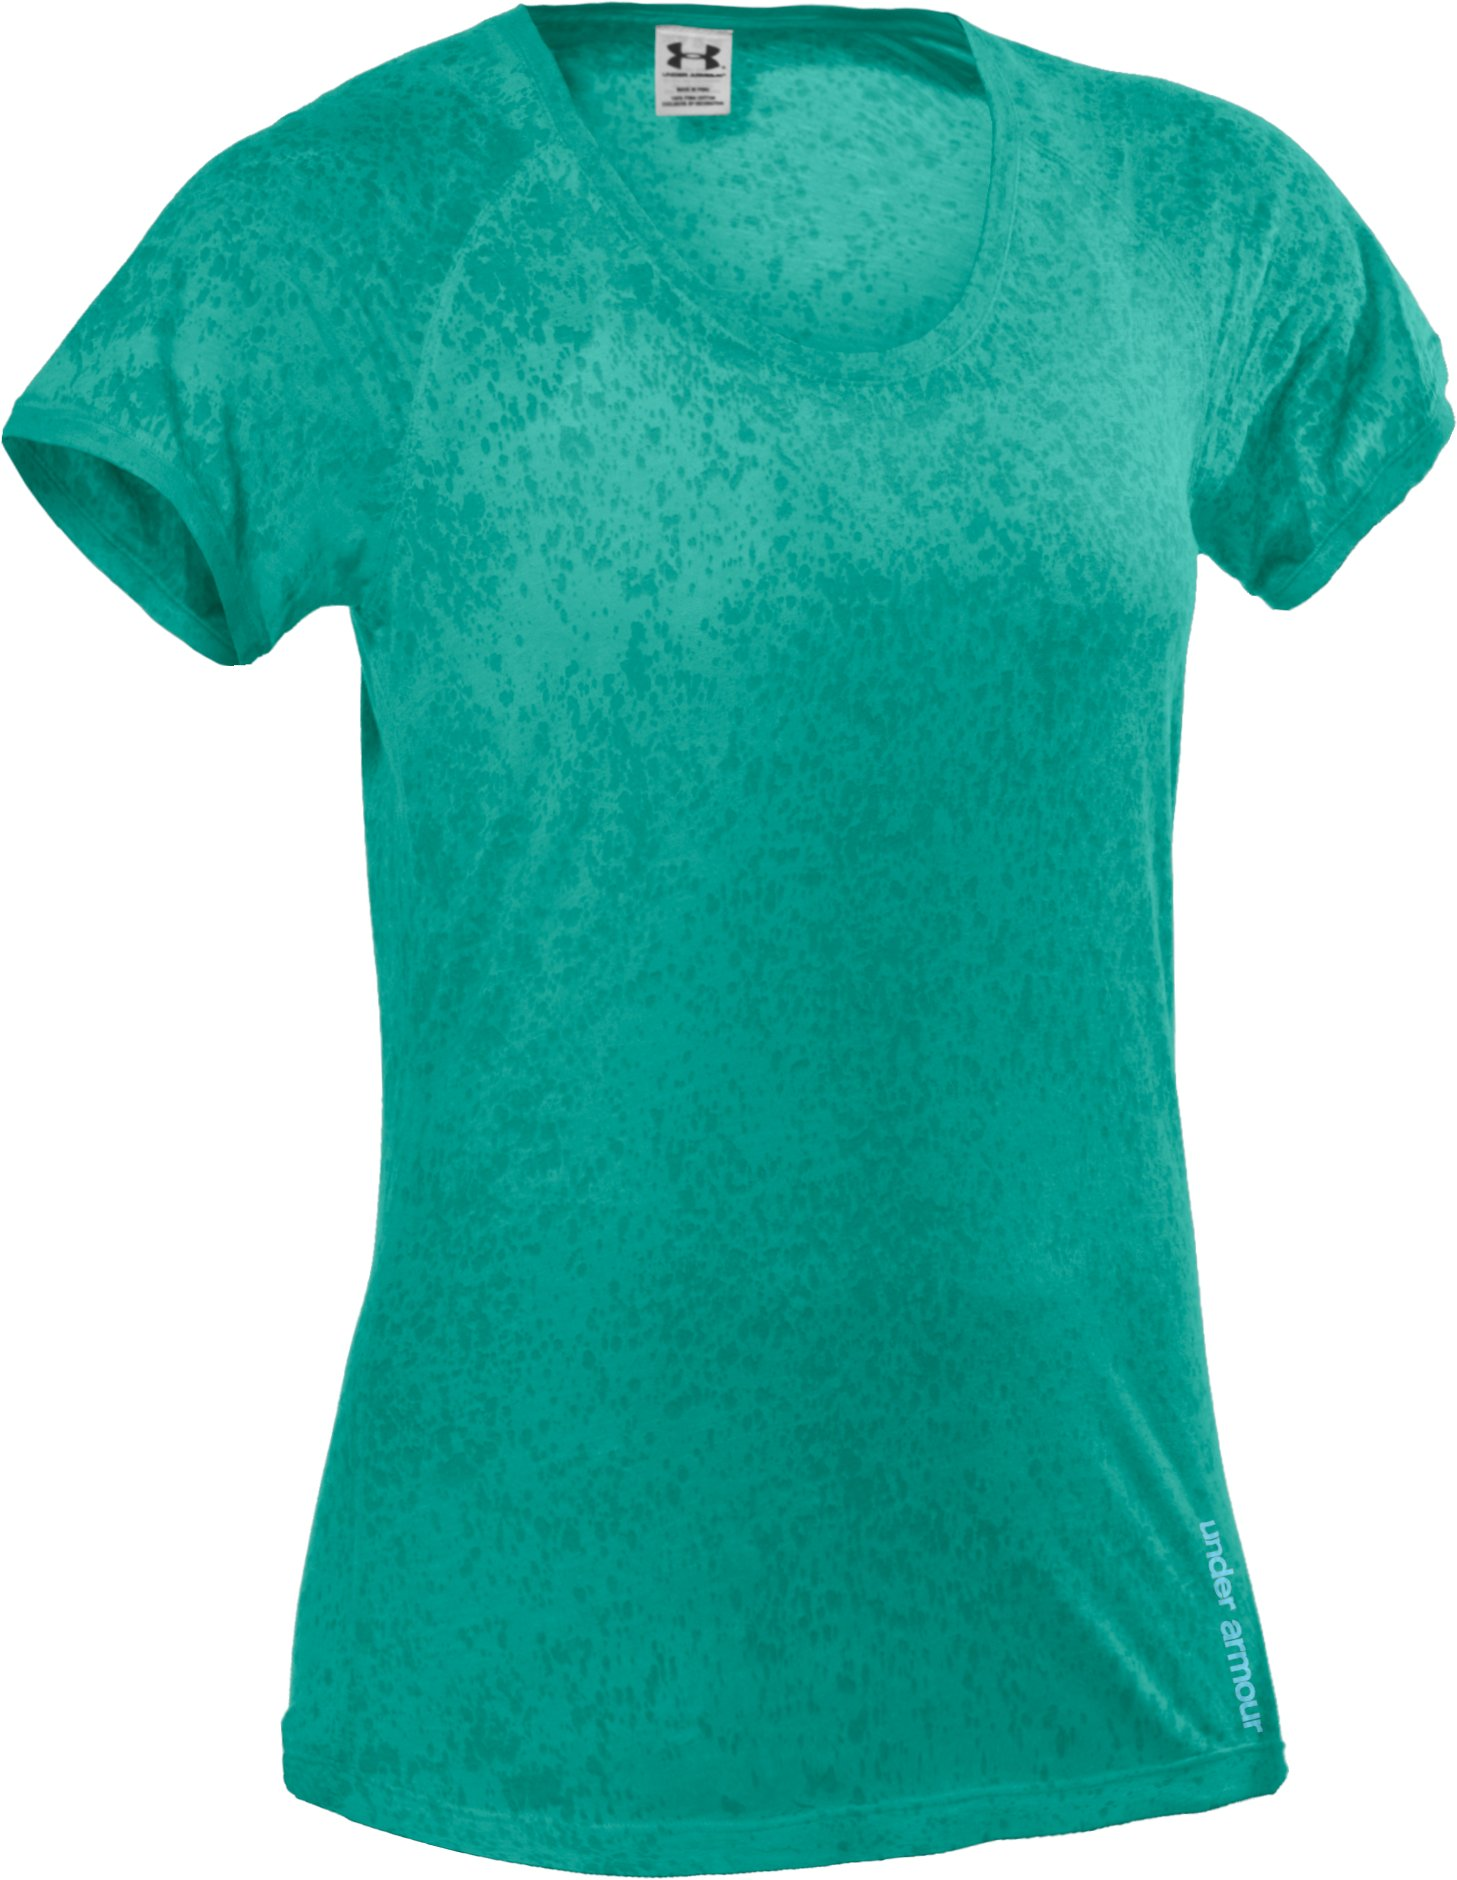 Women's Charged Cotton® Orchid Wash T-Shirt, Jade River